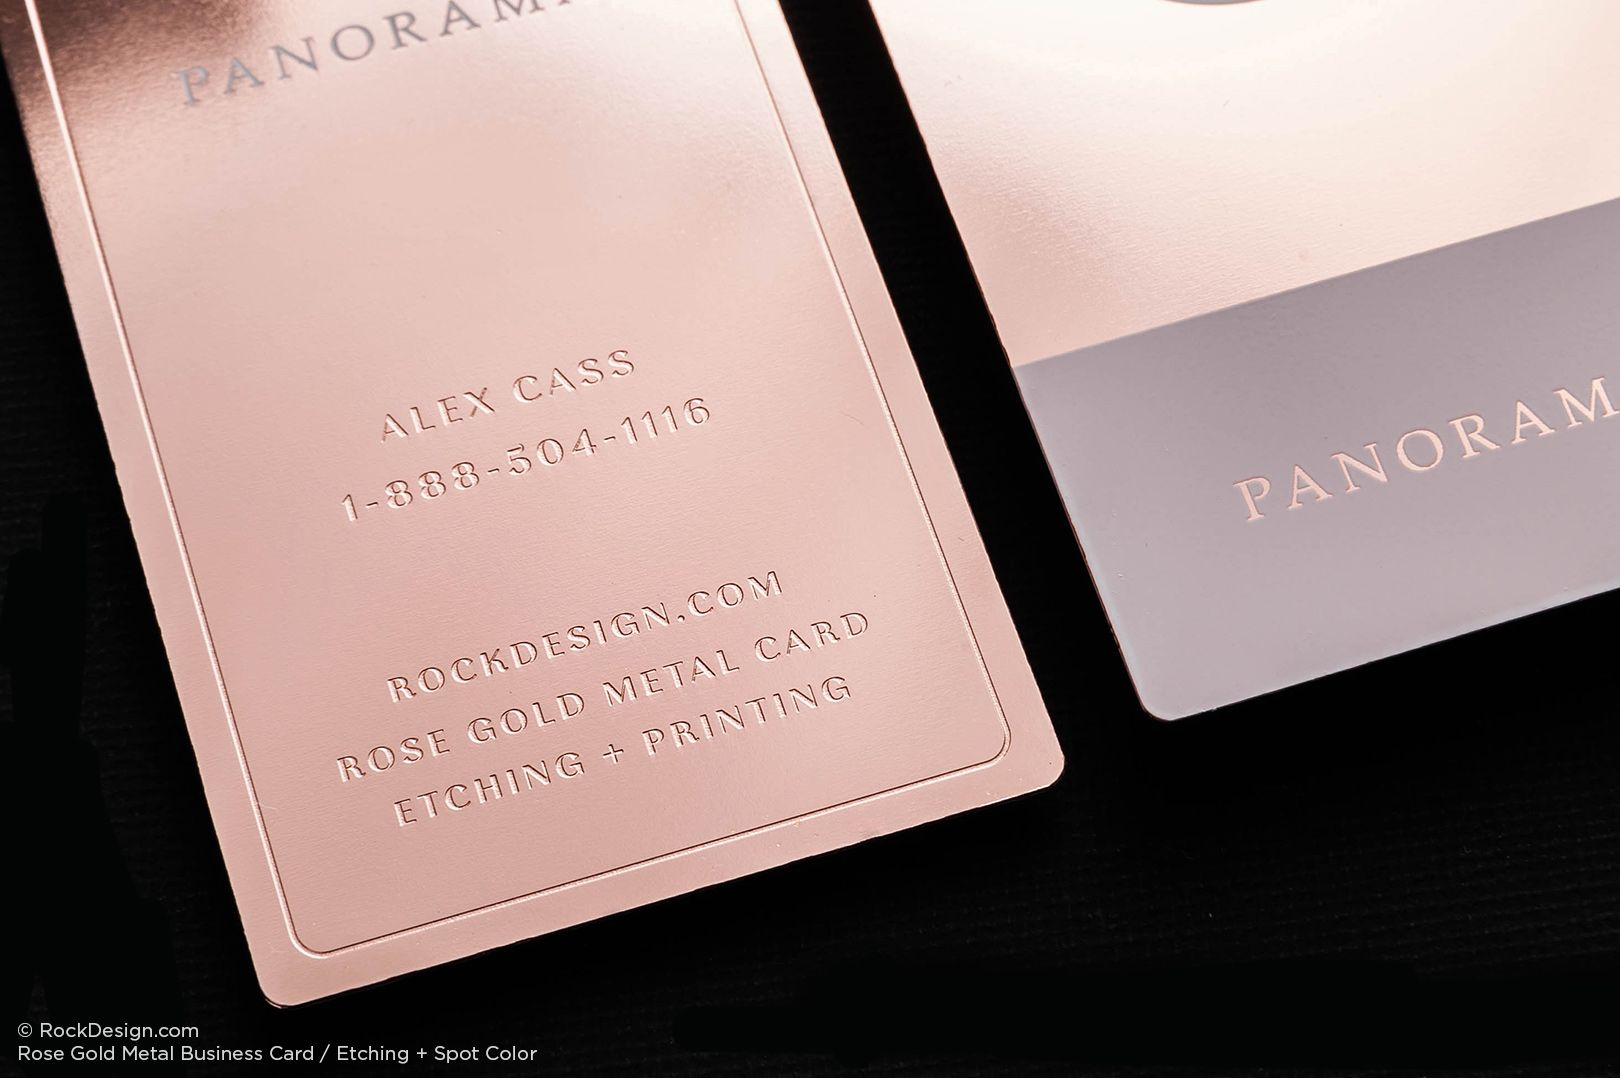 Rose Gold Metal Business Cards | RockDesign Luxury Business Card ...